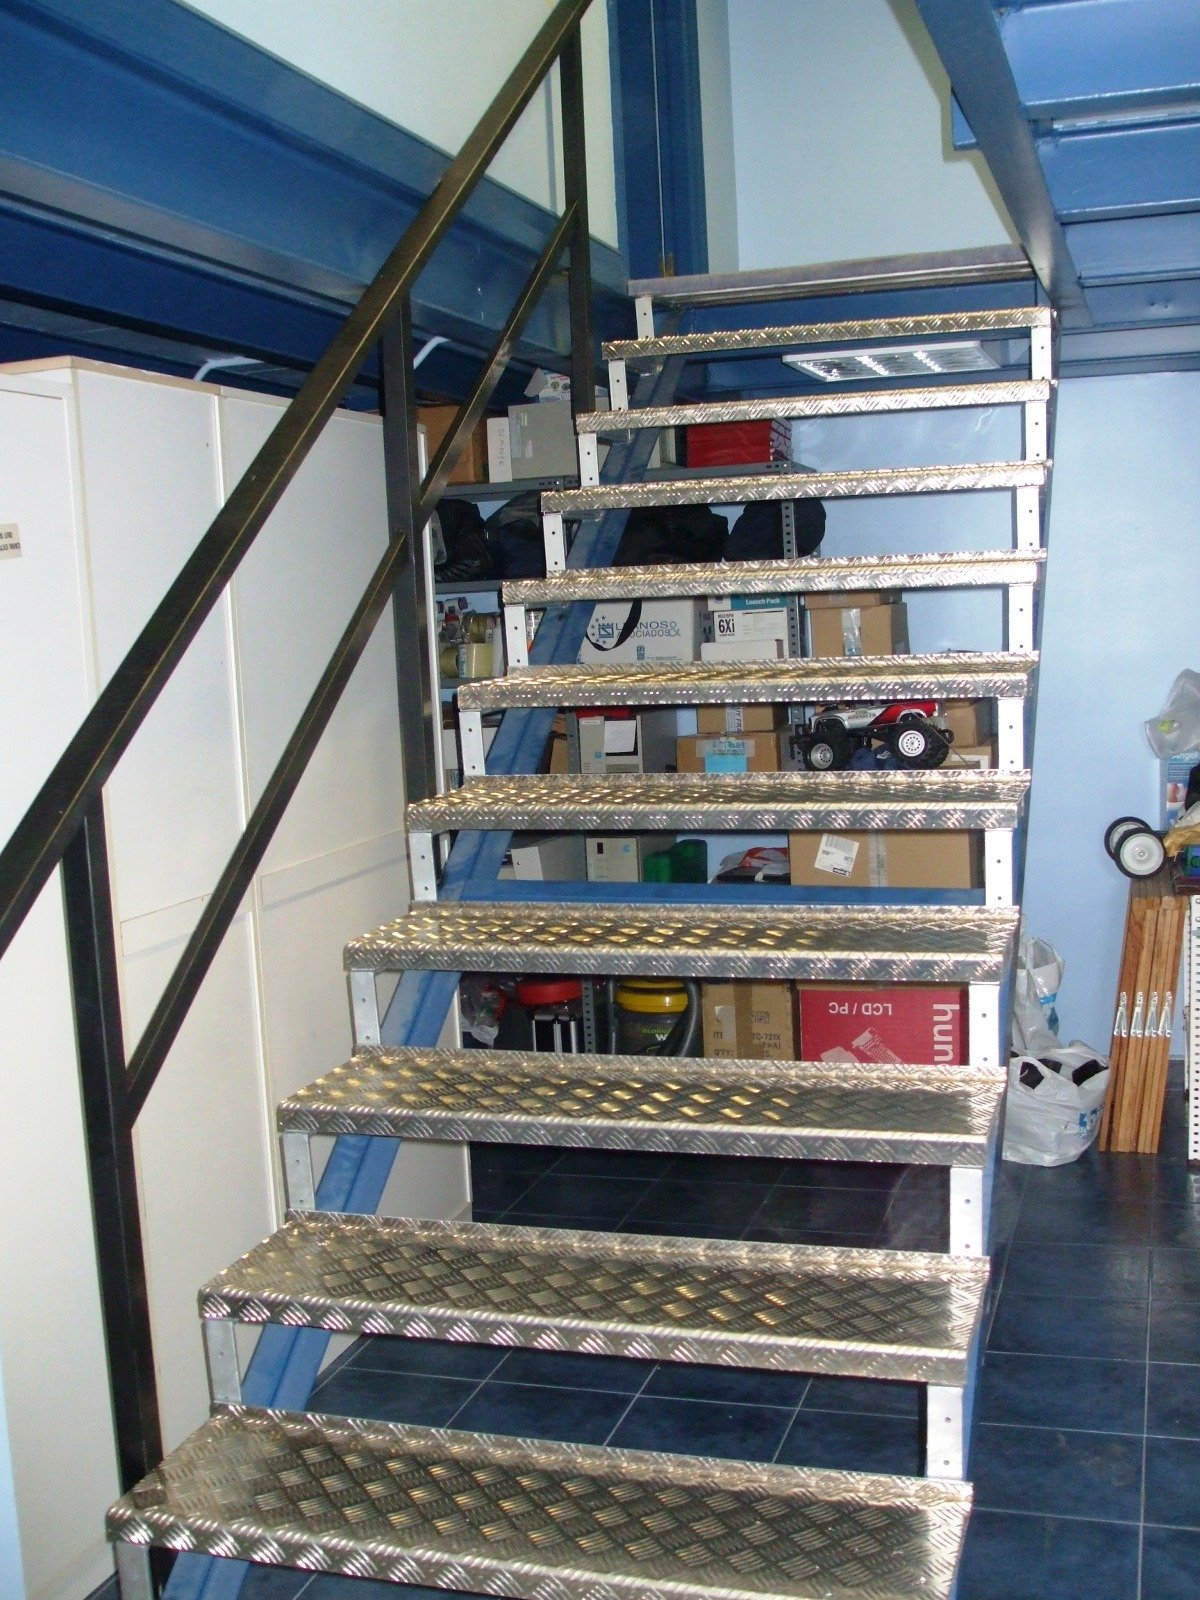 Borca persianas y cerramientos escaleras escamoteables for Escaleras escamoteables